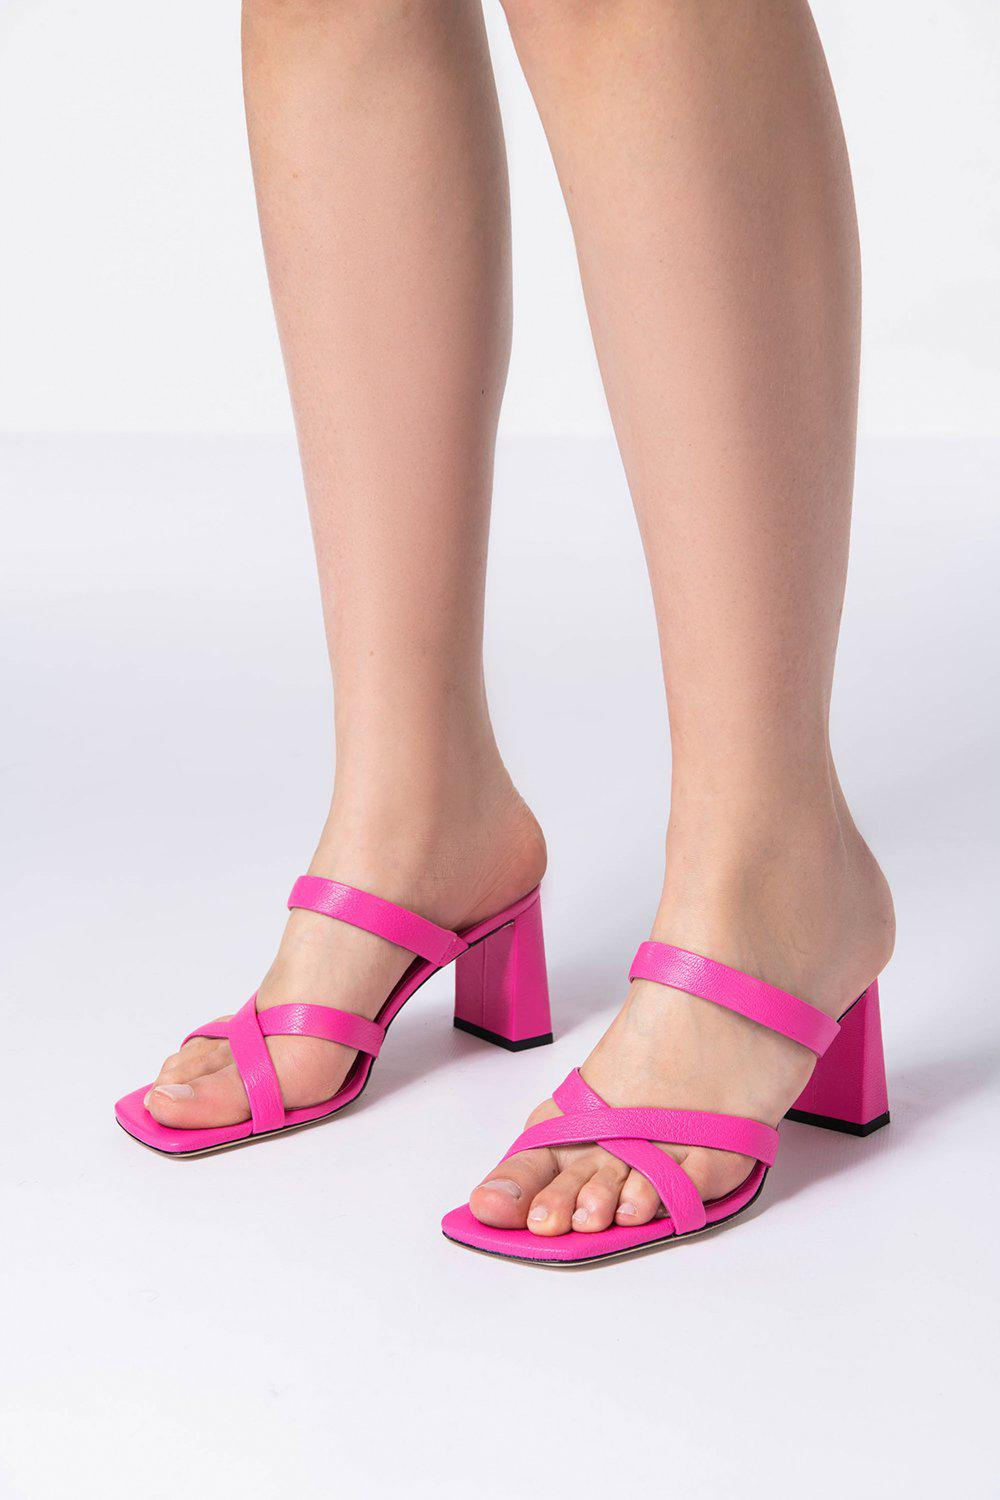 Lenny Hot Pink Grained Leather 4